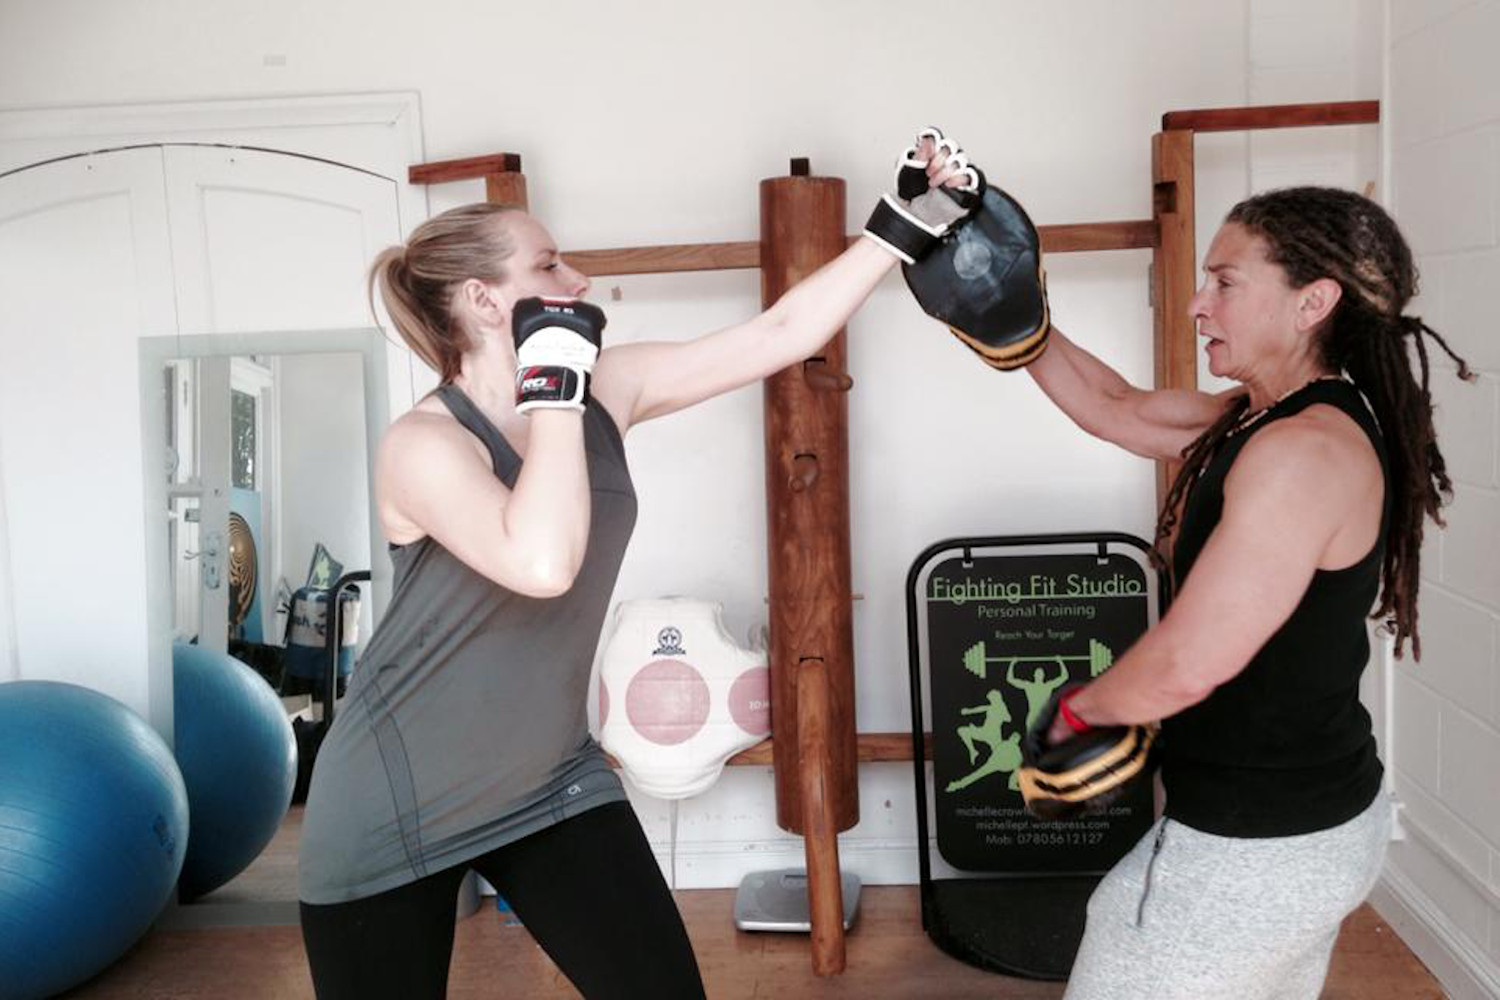 Fighting fit studio personal trainer in Bow